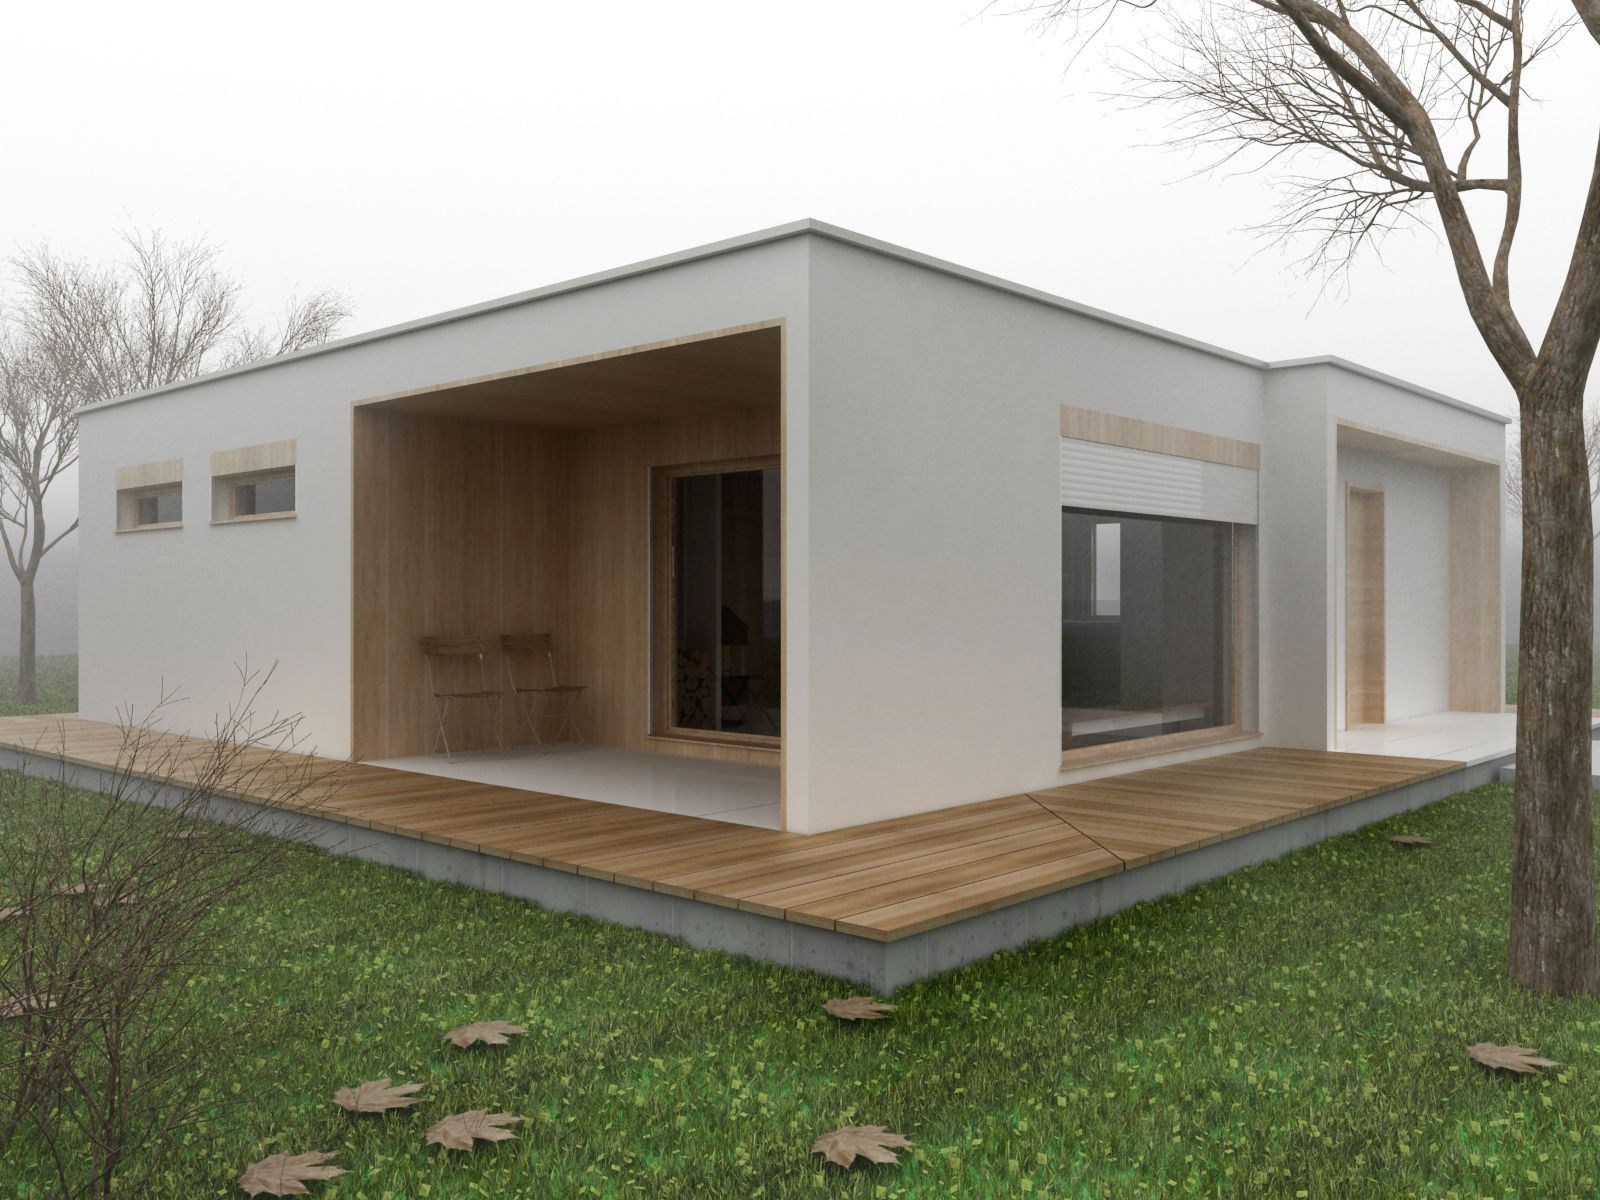 Sensational 17 Best Images About Clever Small House Designs On Pinterest Largest Home Design Picture Inspirations Pitcheantrous